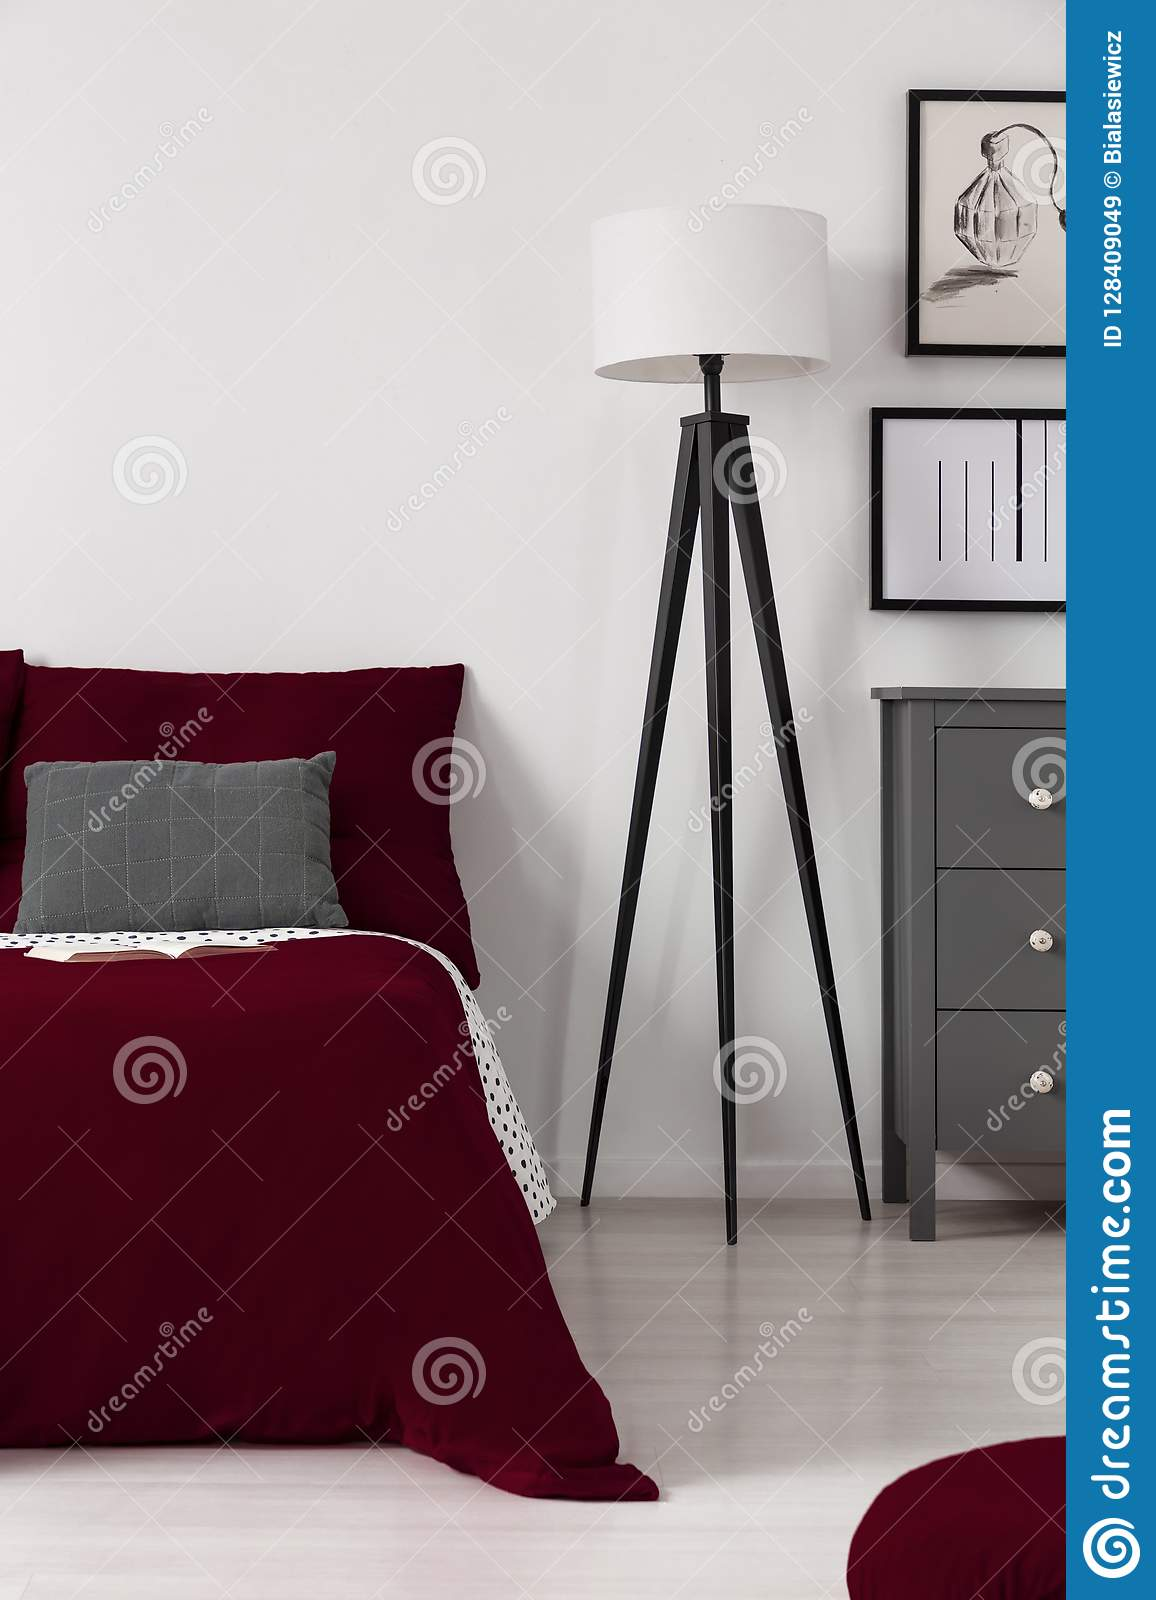 1 256 Modern Red Black Bedroom Photos Free Royalty Free Stock Photos From Dreamstime